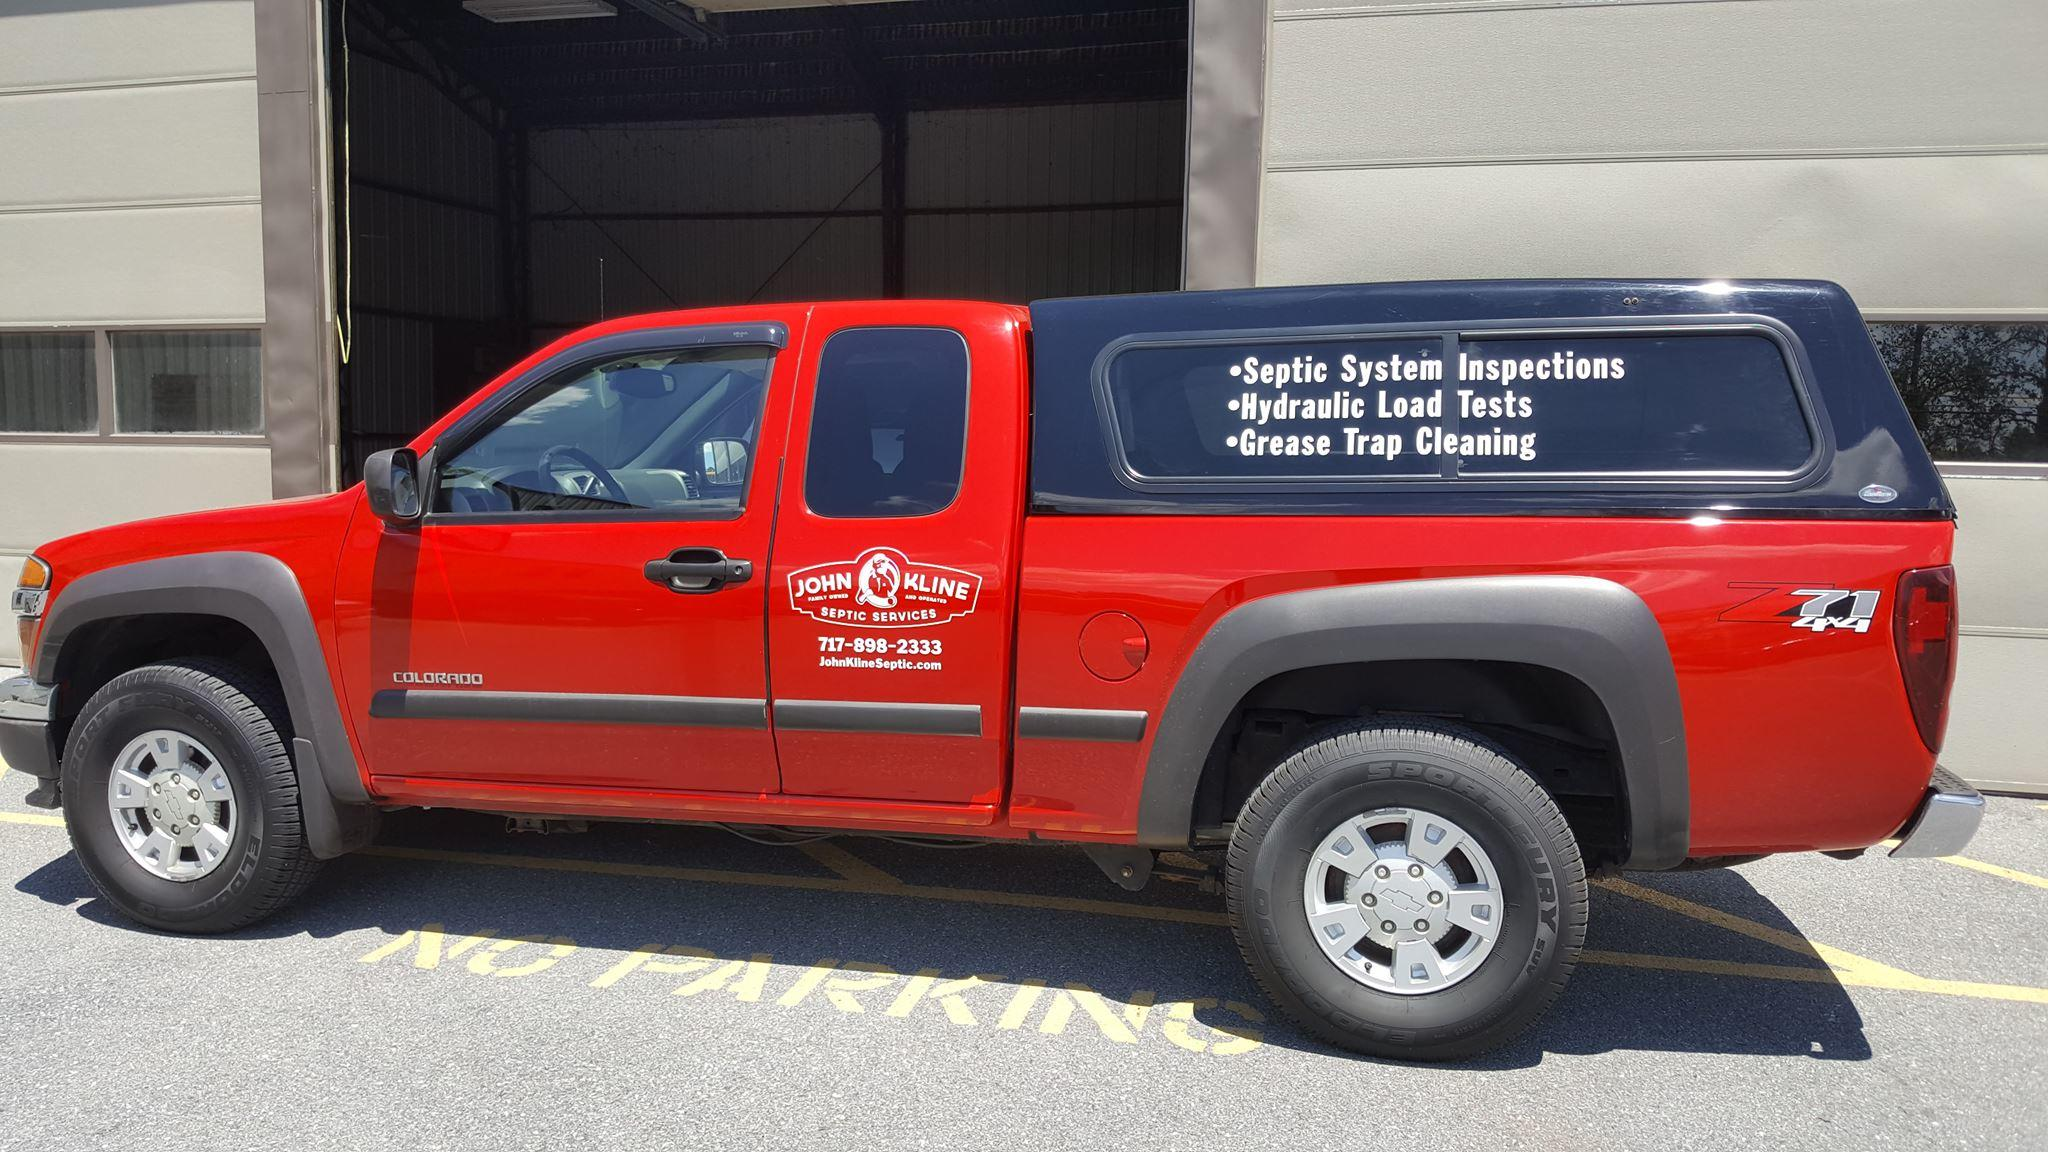 John Kline Septic Services 3869 Old Harrisburg Pike Mount